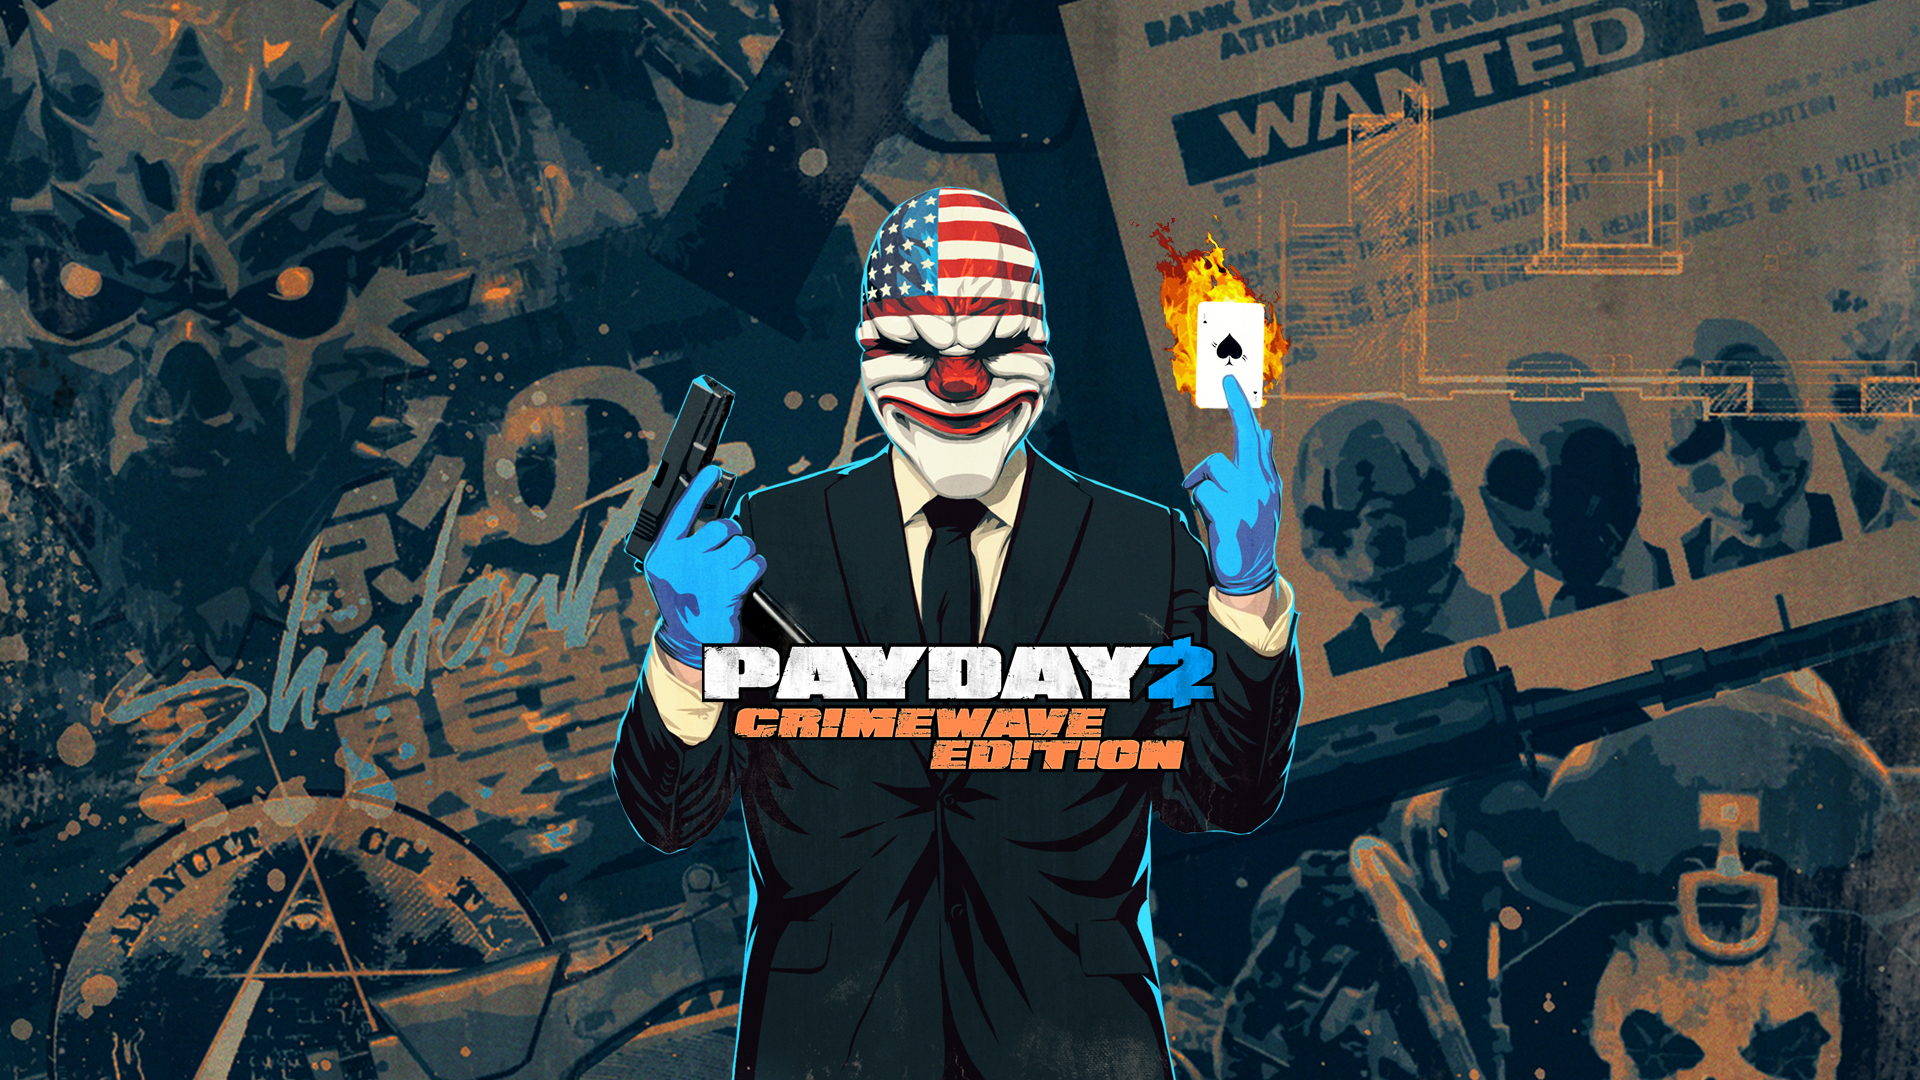 Payday 2 Payday Game Payday 3: PAYDAY 2: Crimewave Game